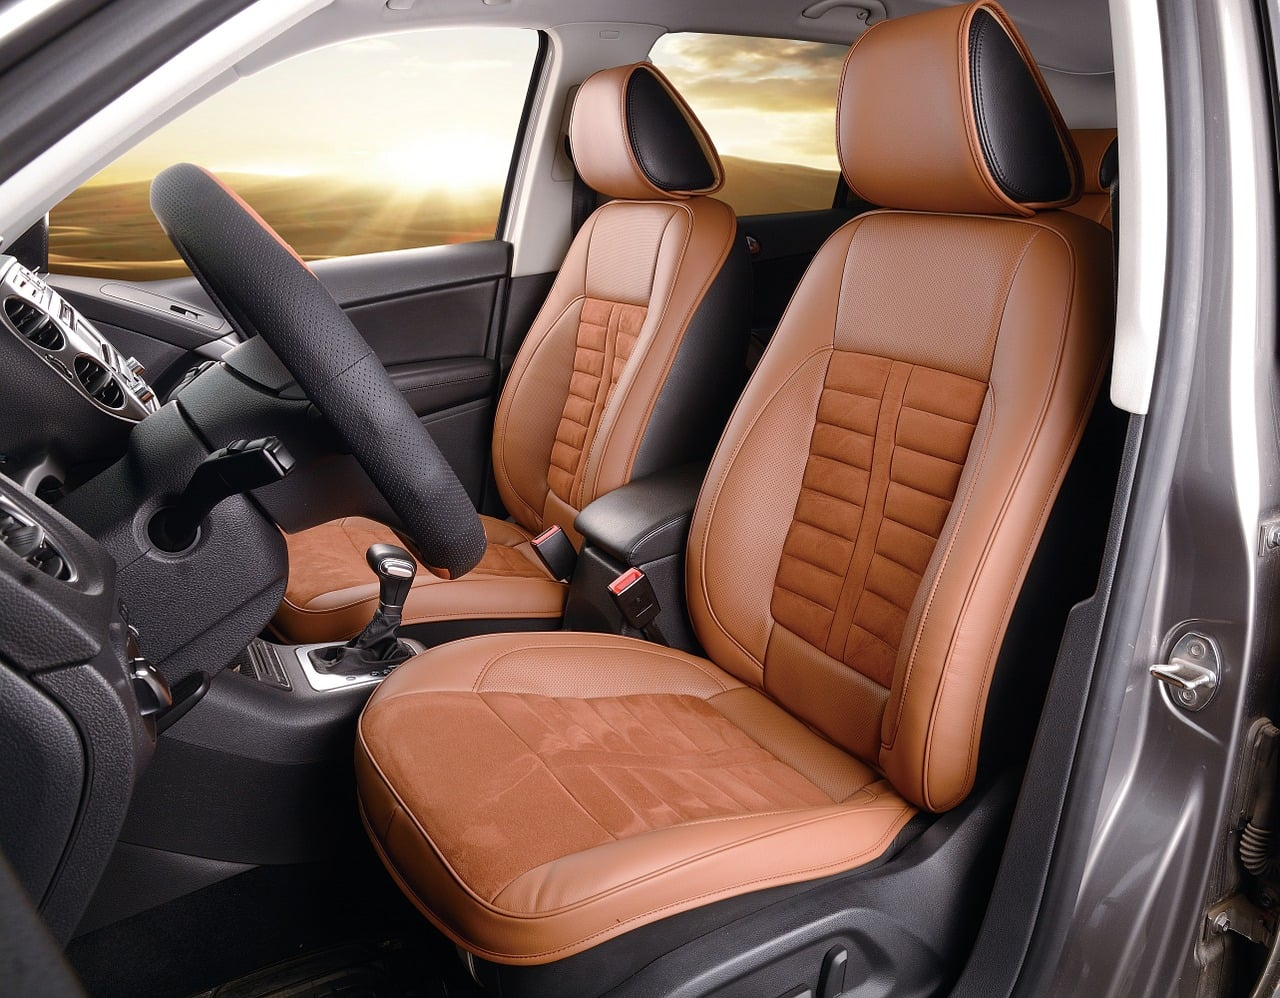 Automotive leather and furniture